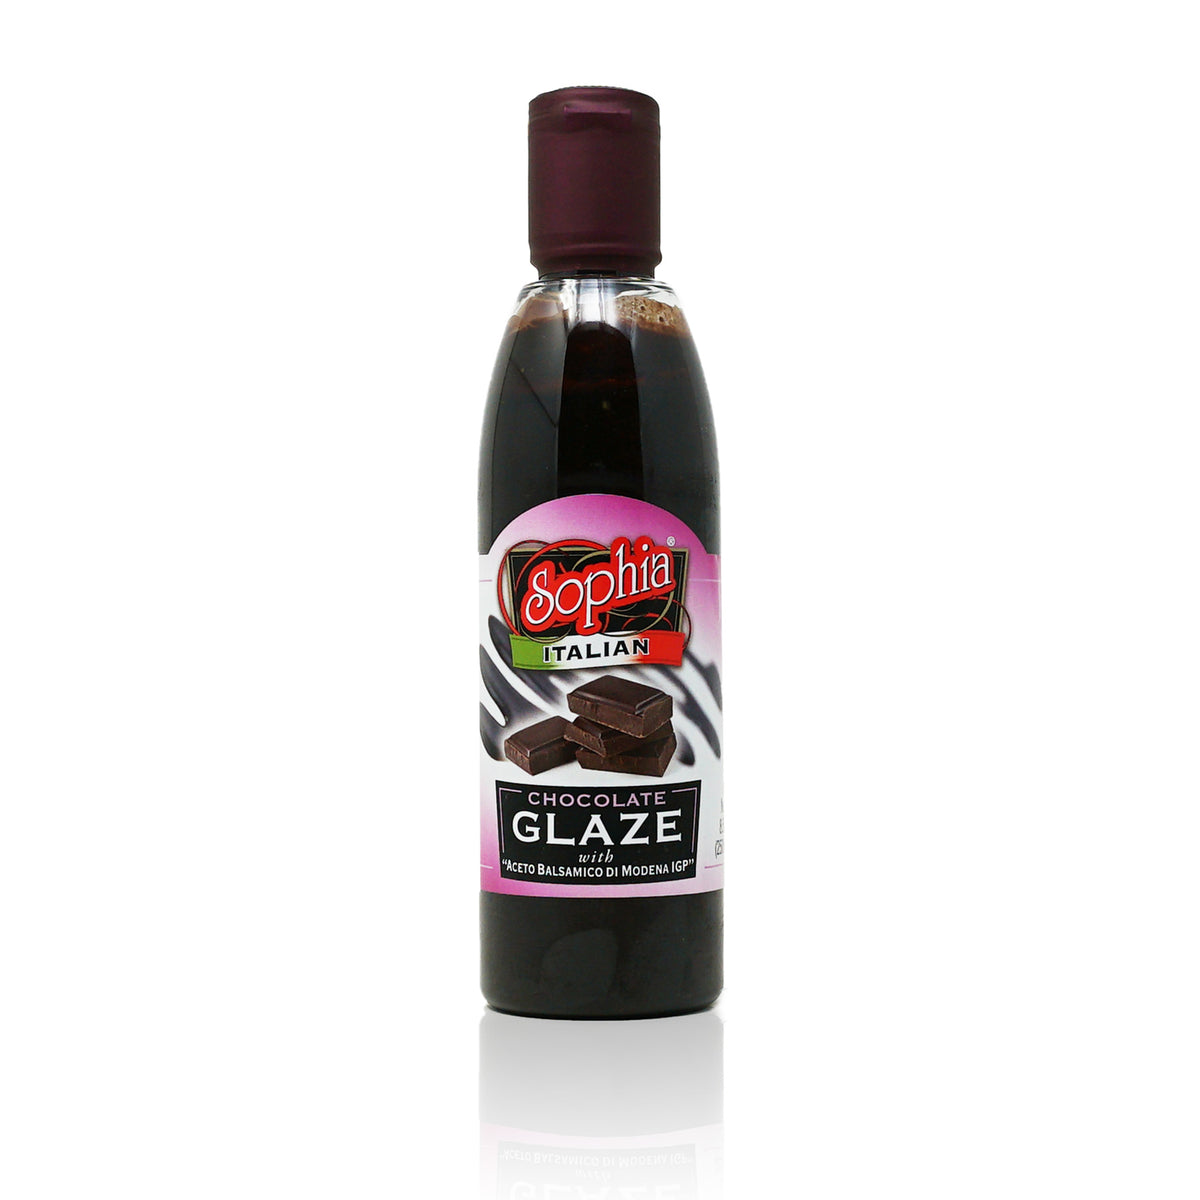 Sophia Balsamic Glaze-Chocolate 8.5oz